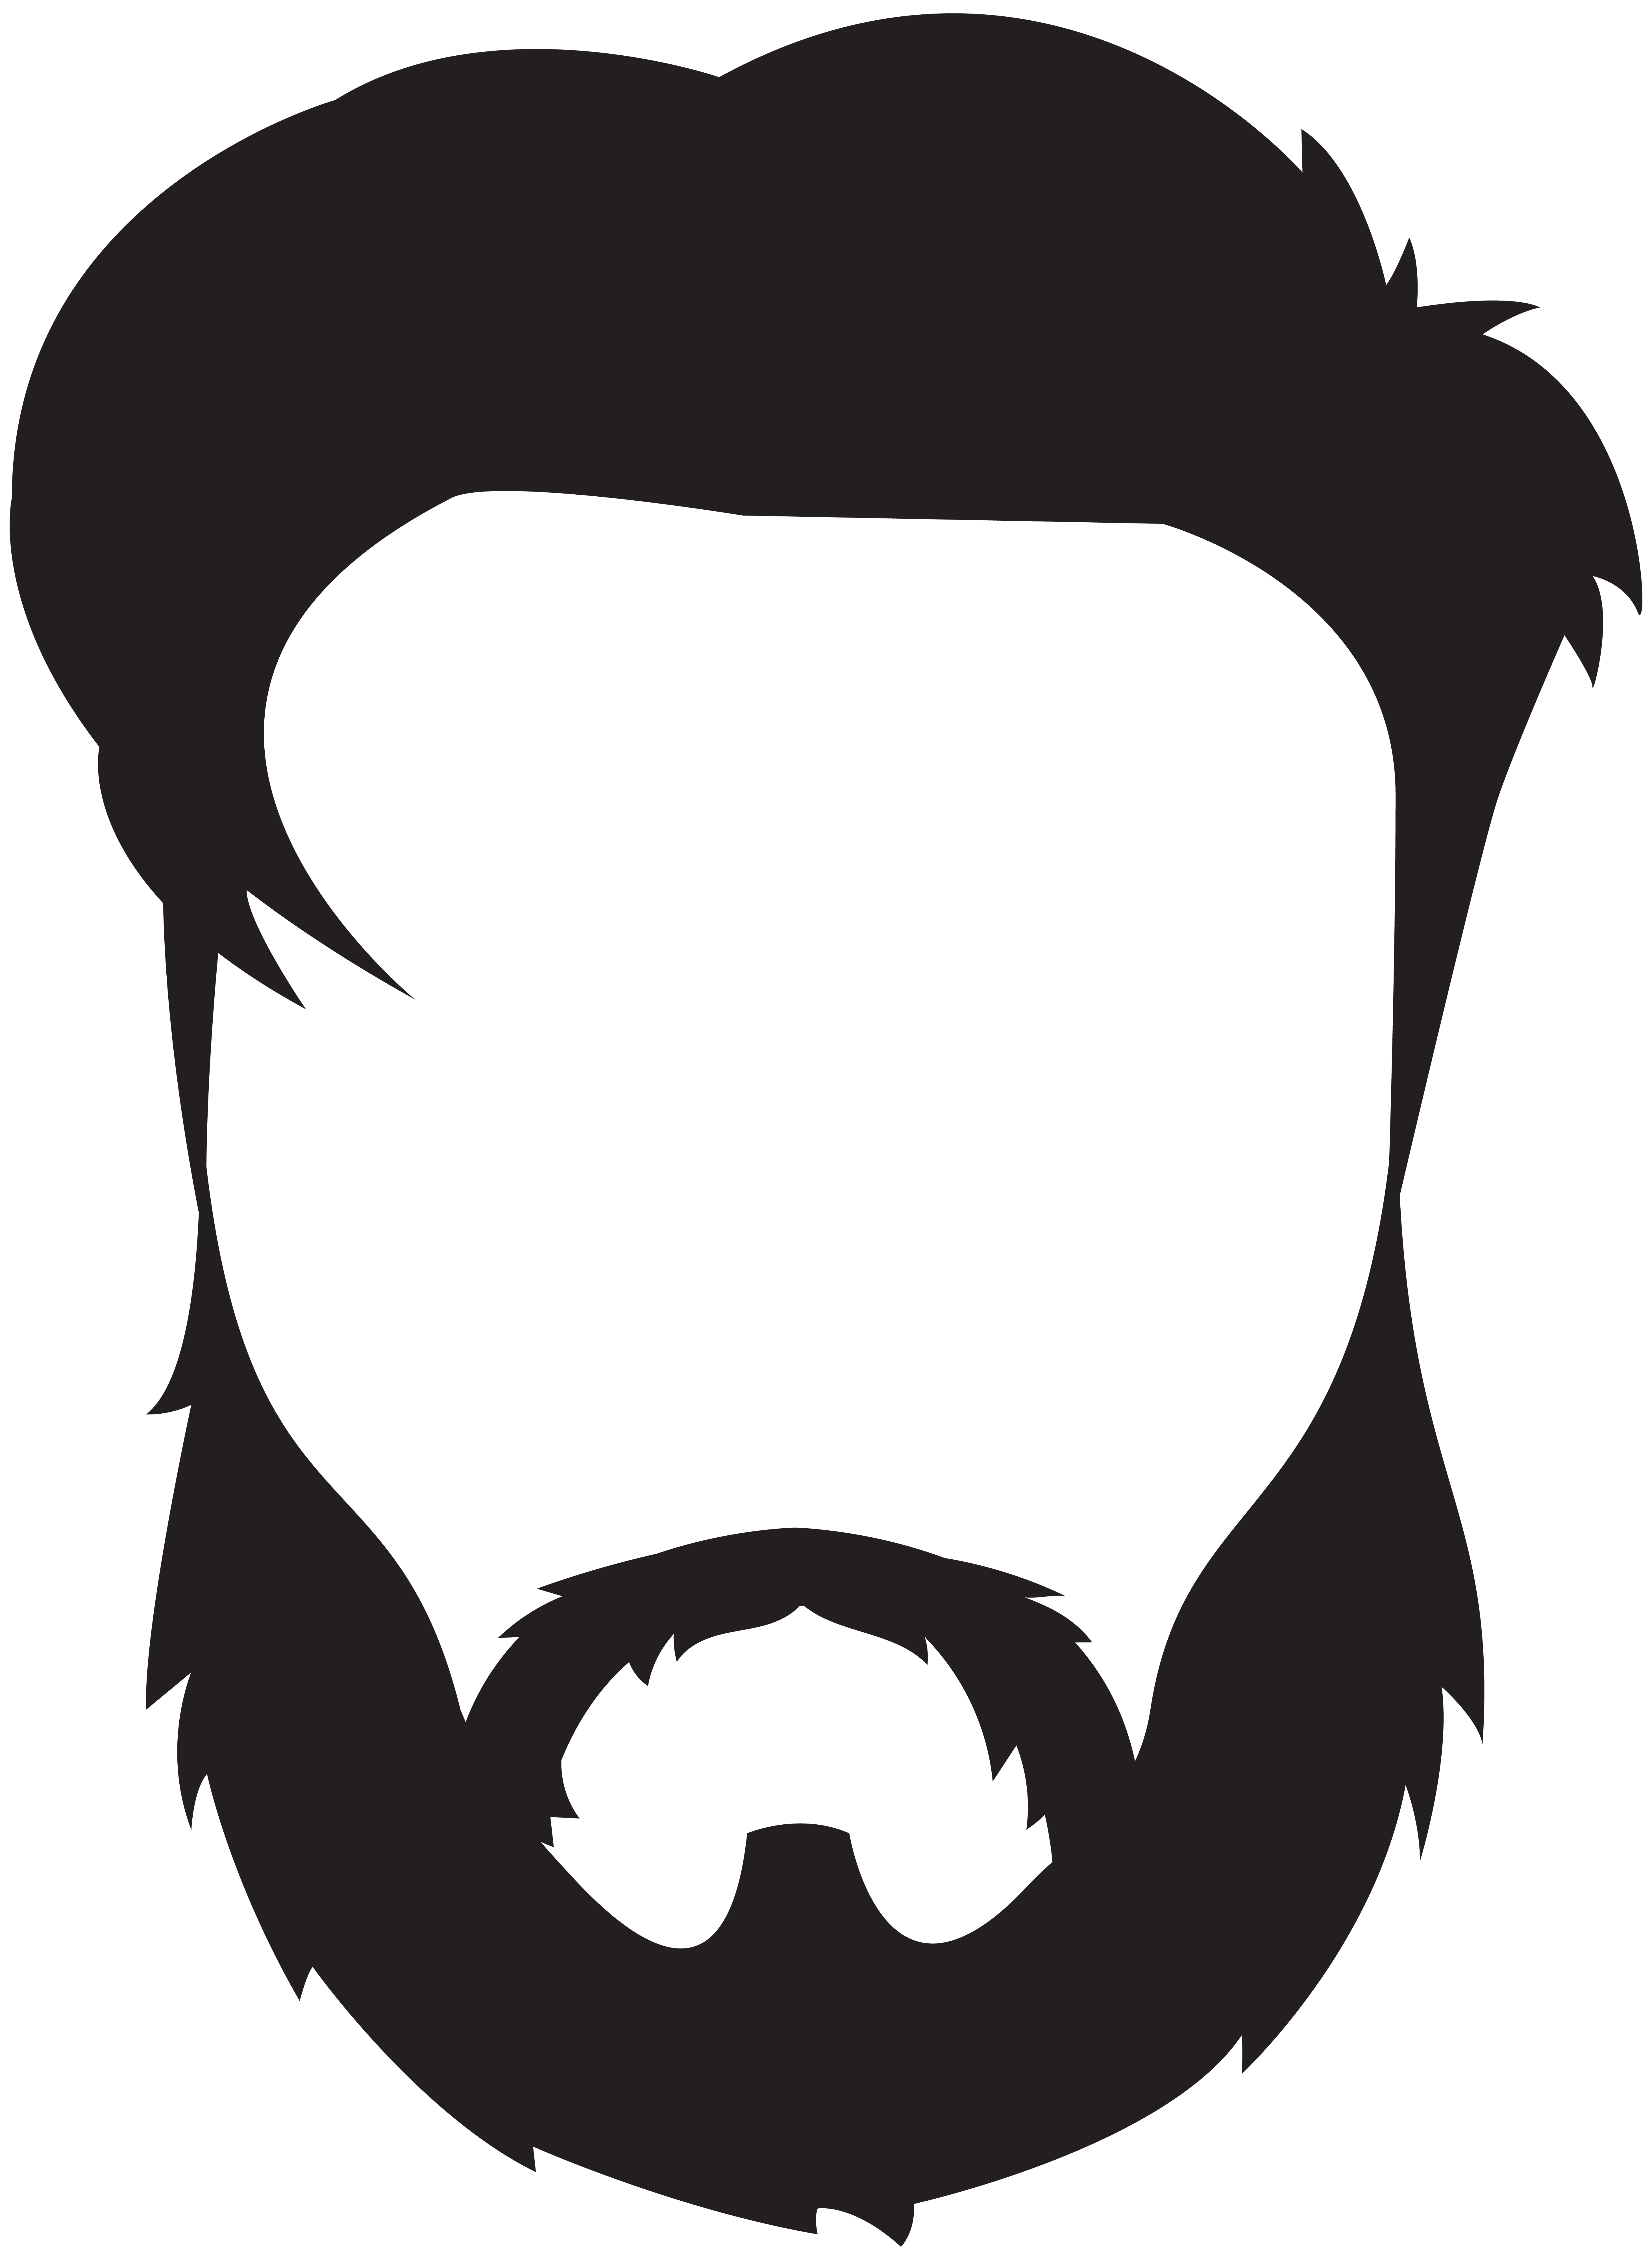 clip royalty free library Man hair mustache png. Beard clipart.